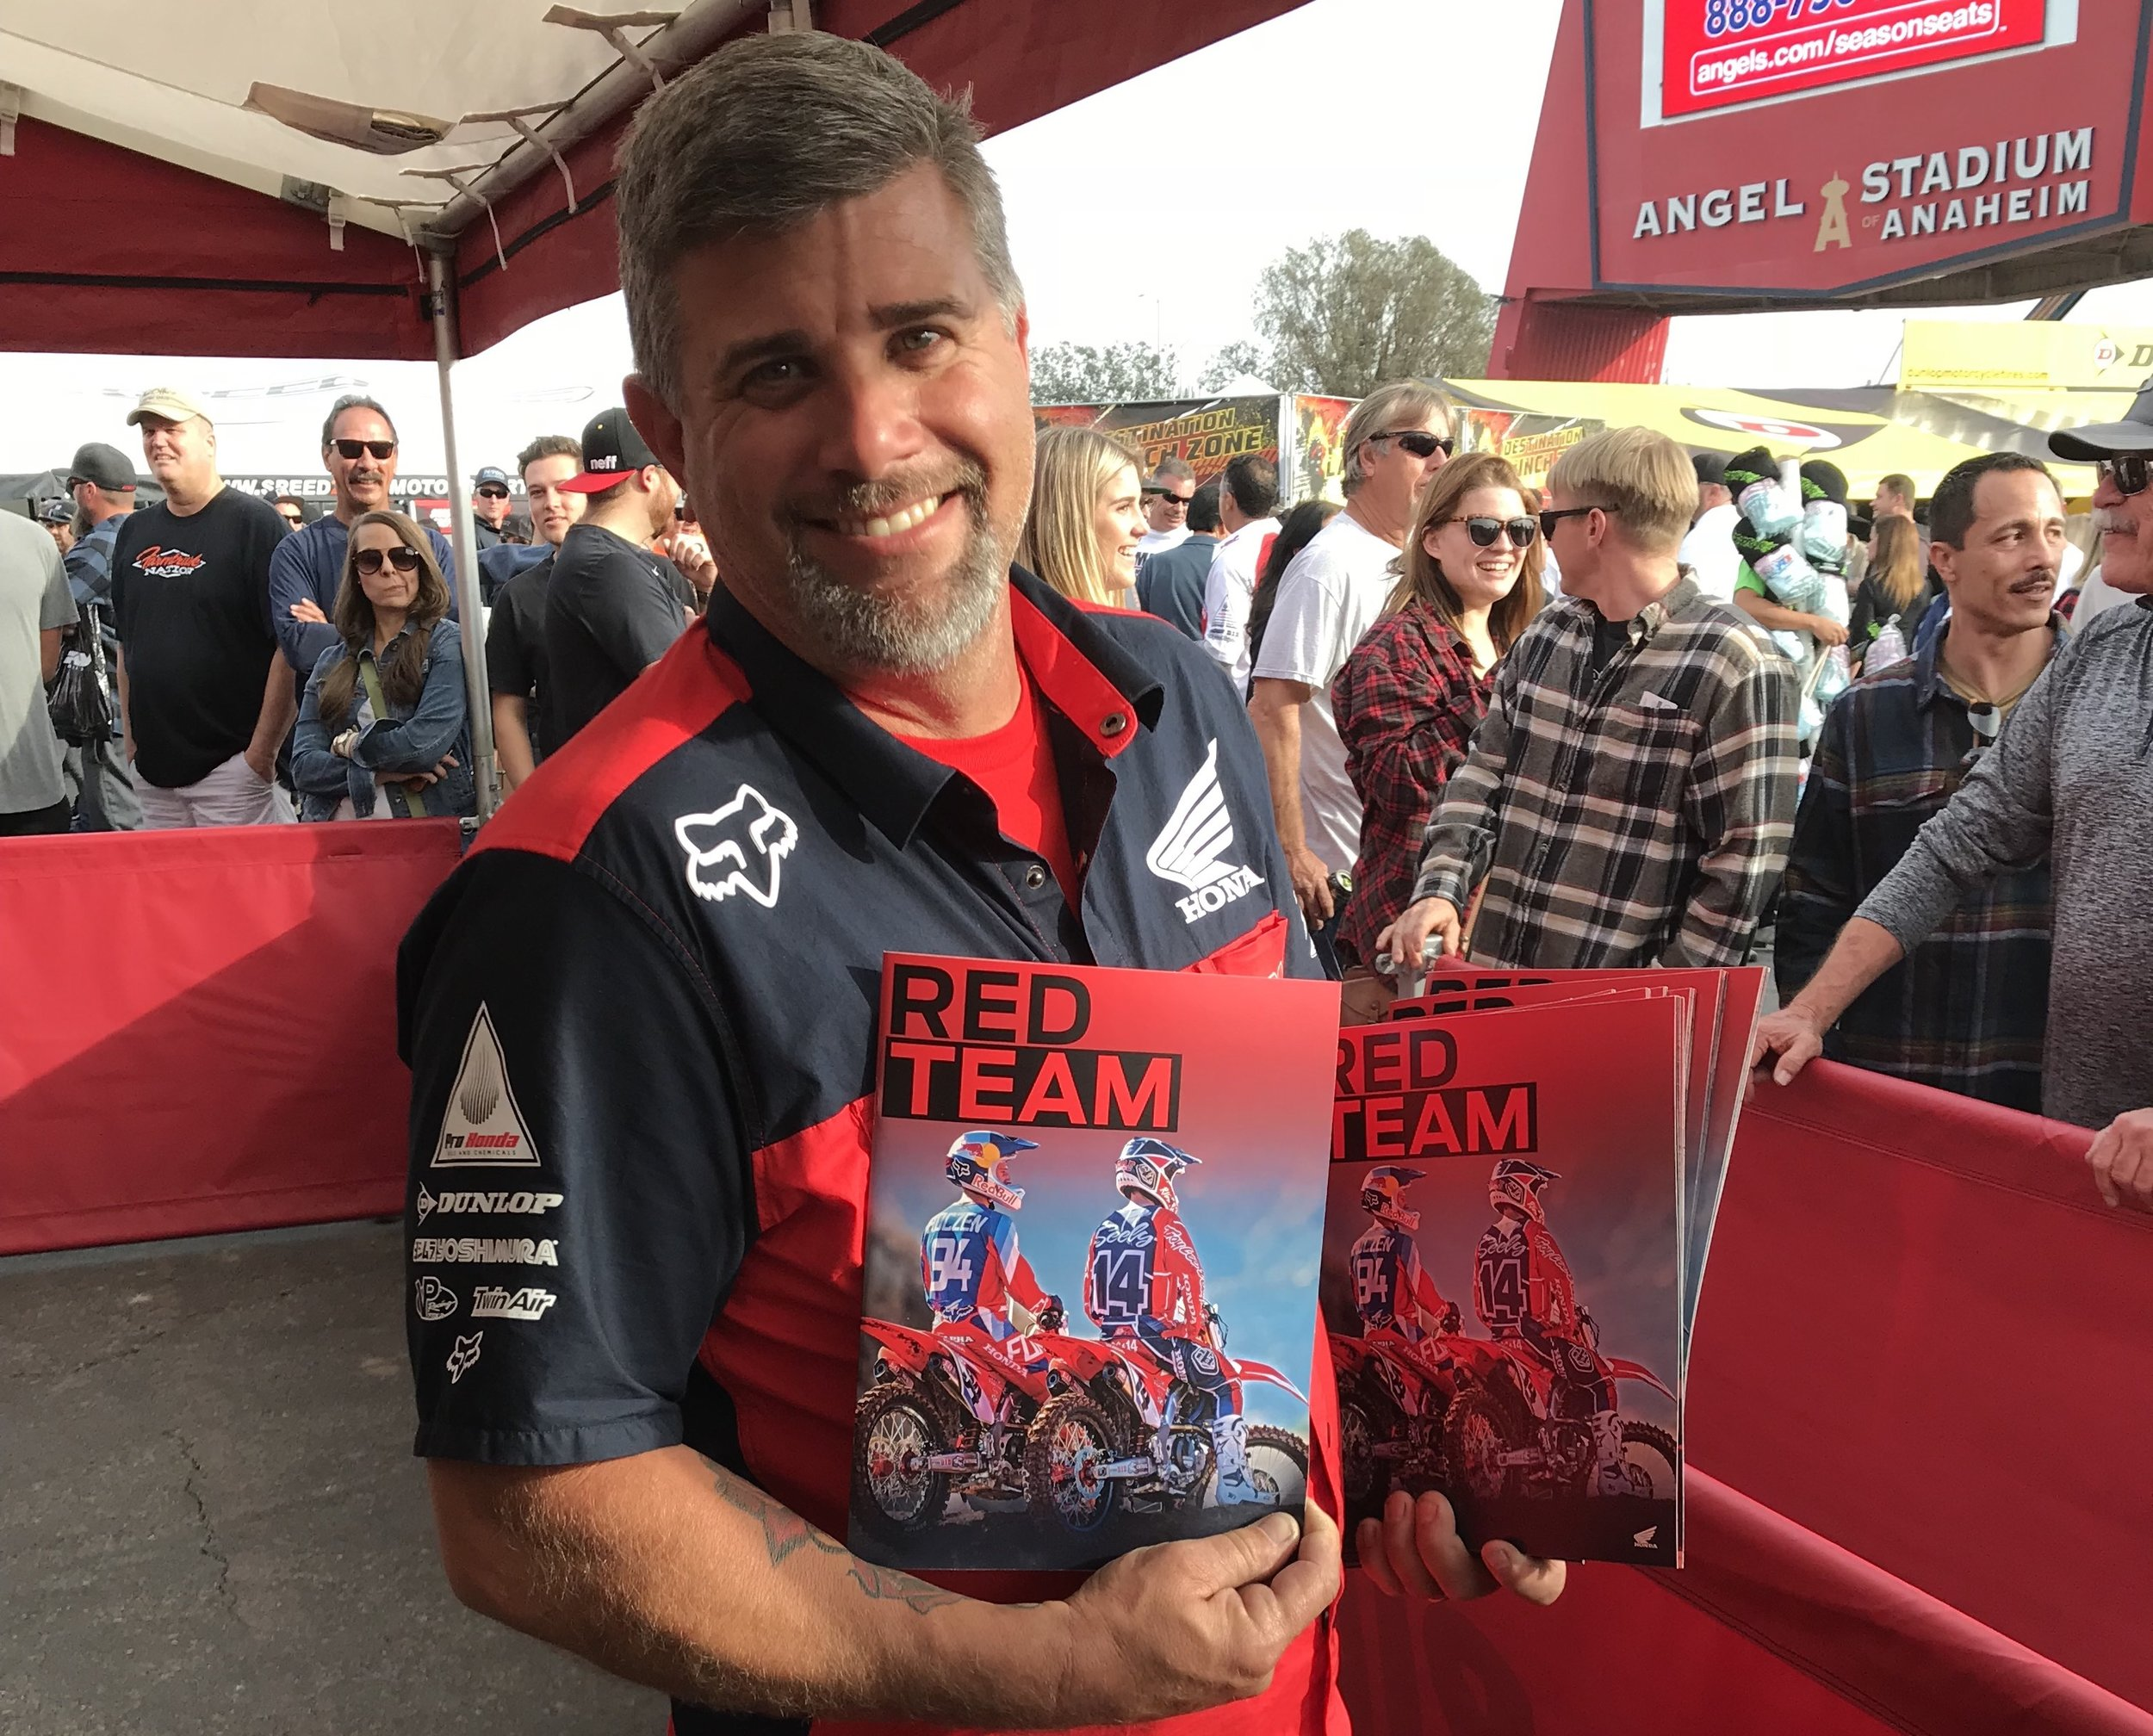 For the 2018 season, we published a special magazine on Team Honda HRC, which the squad distributes to partners and fans at the races.